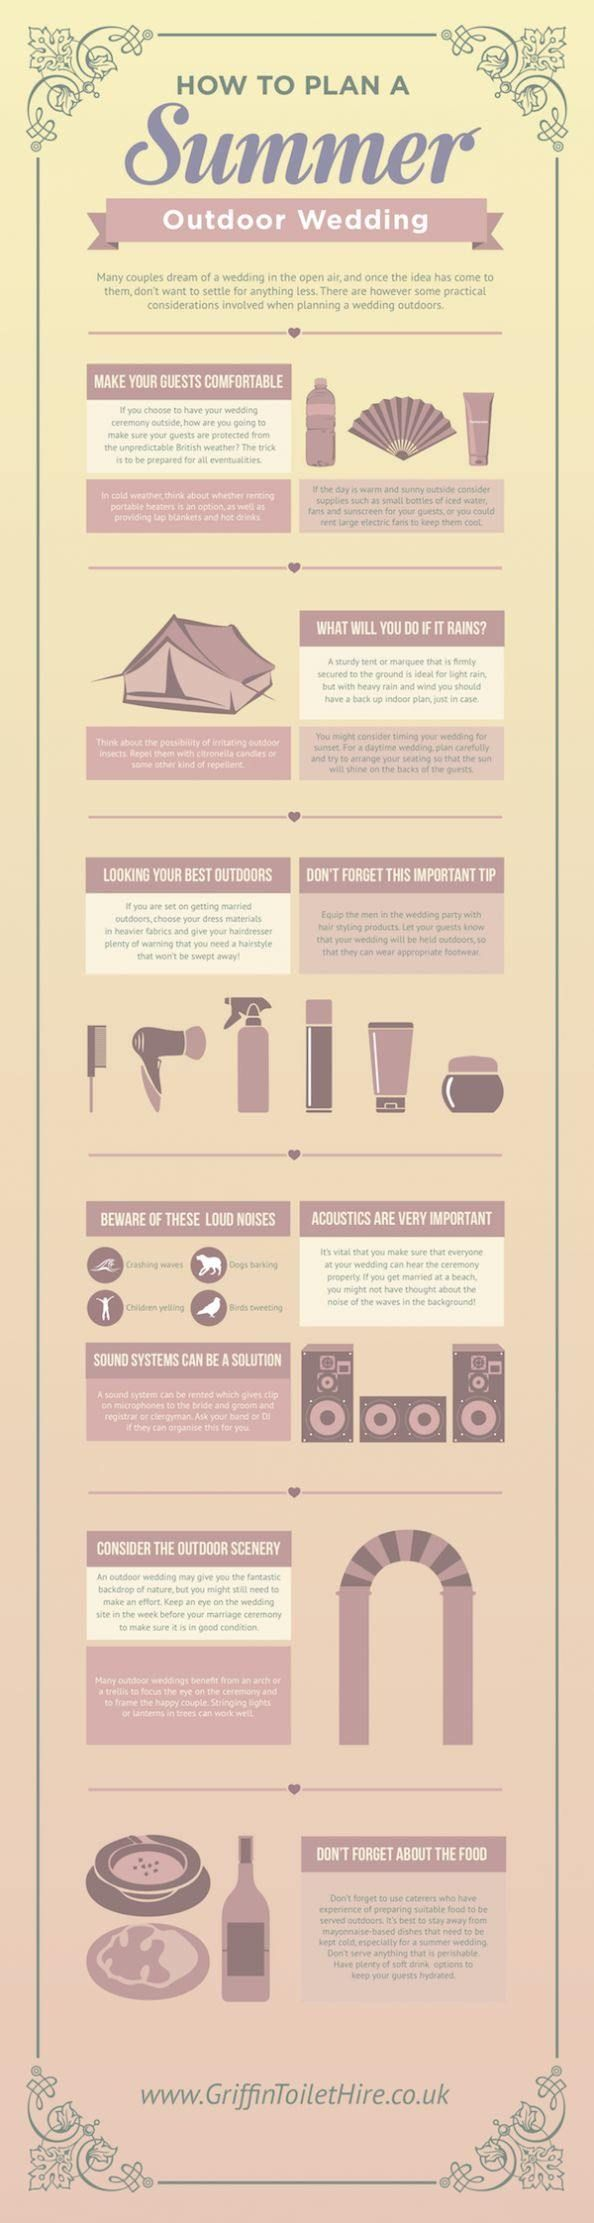 What we love about wedding planning infographics are the cool new ideas that keep us on ourtoes throughout the process. From the commonly asked questions for wedding venues down to the foods you should avoid just before the wedding, we have you covered with these super helpful tips from the professionals. Take a look, and […]